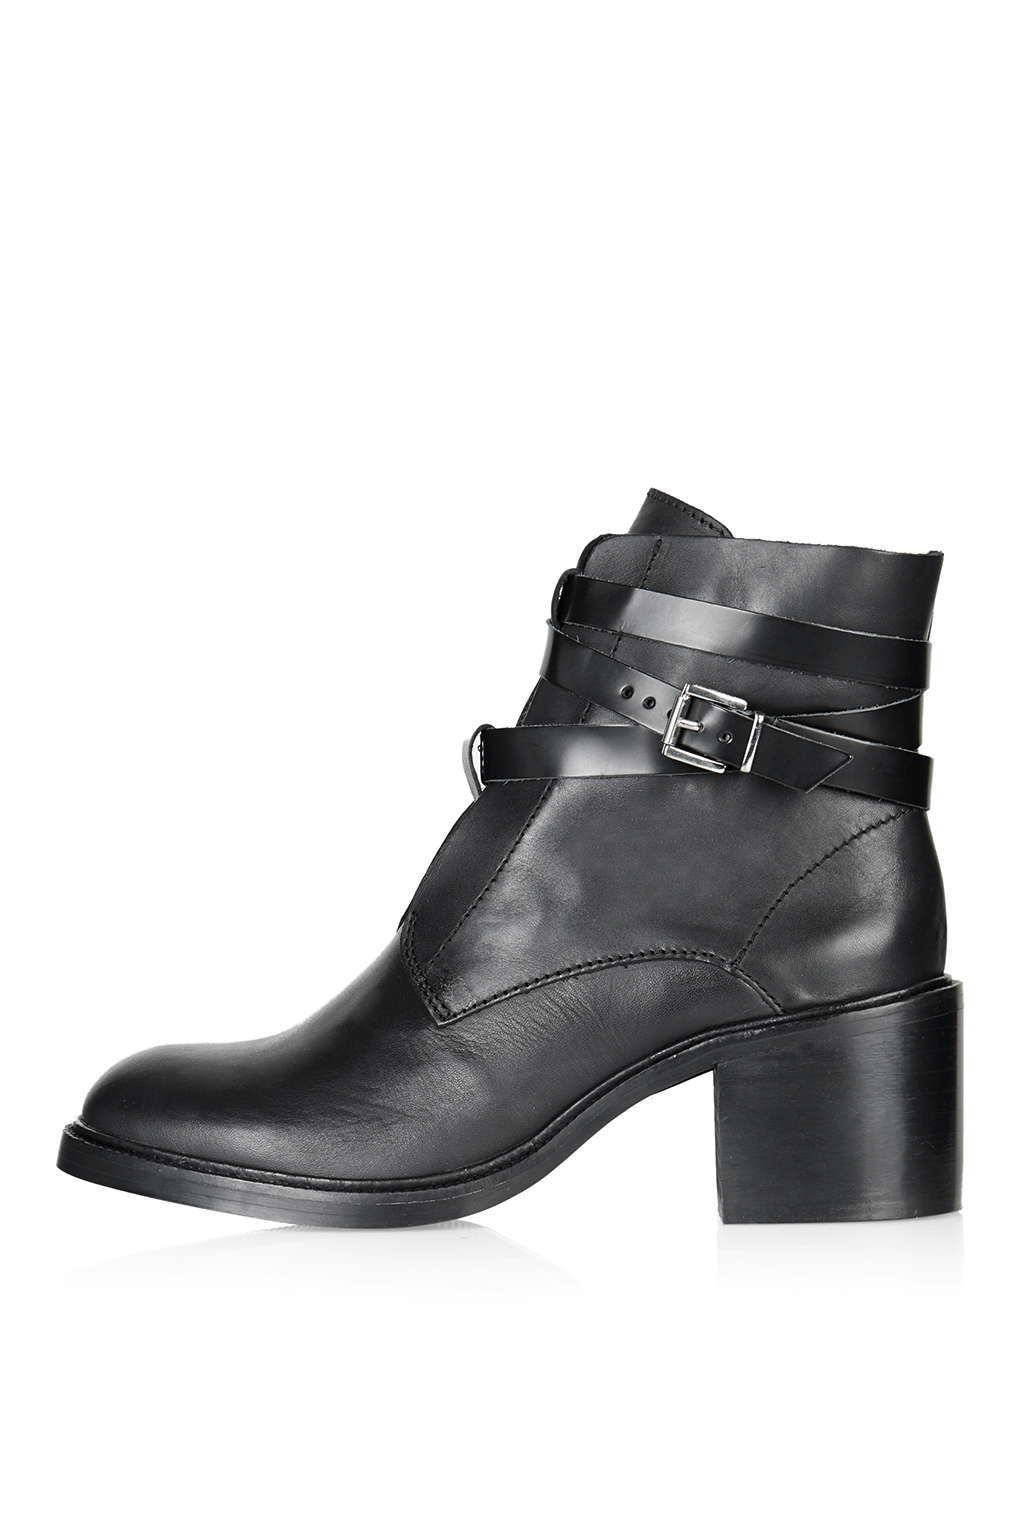 32bb58957f7 MITCHELL Ankle Boots - Topshop | Fancy Feet | Shoe boots, Boots, Shoes